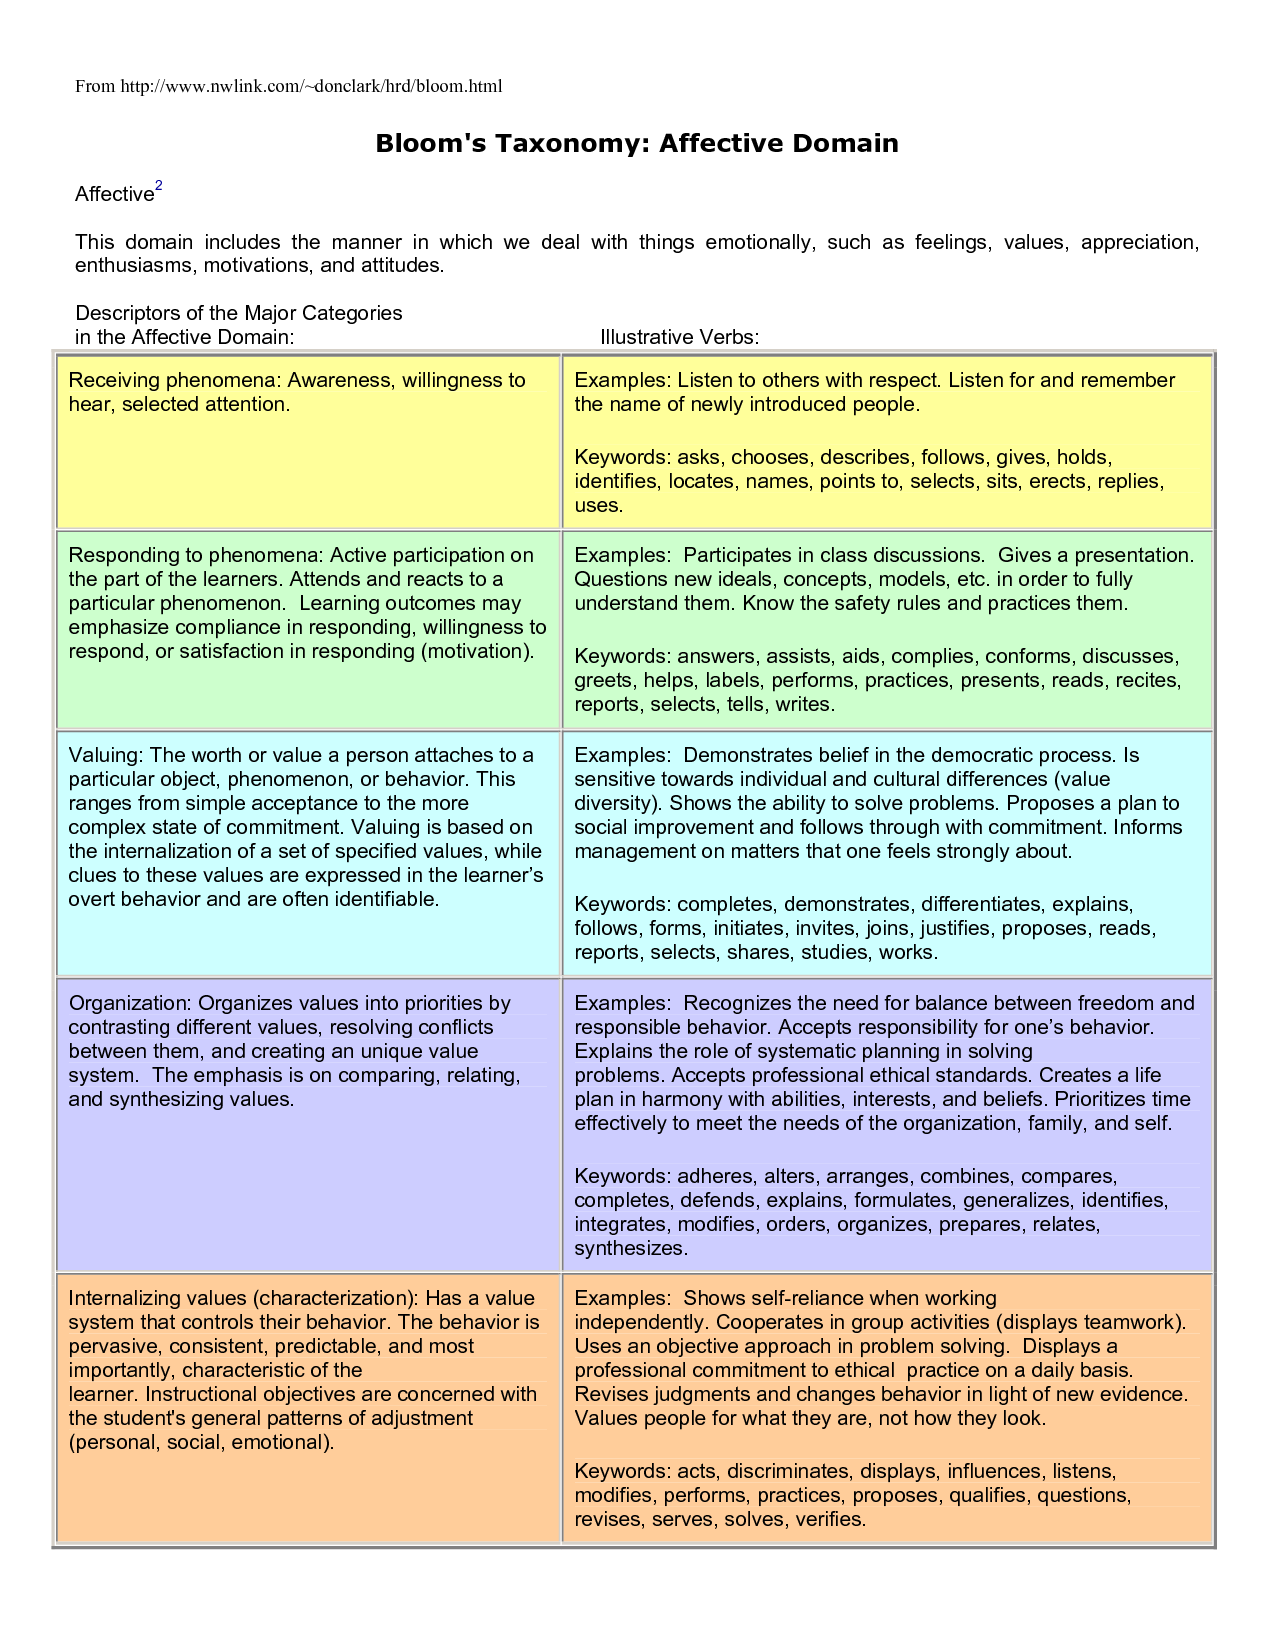 Blooms Taxonomy Affective Domain Blooms Taxonomy Affective - Bloom taxonomy lesson plan template